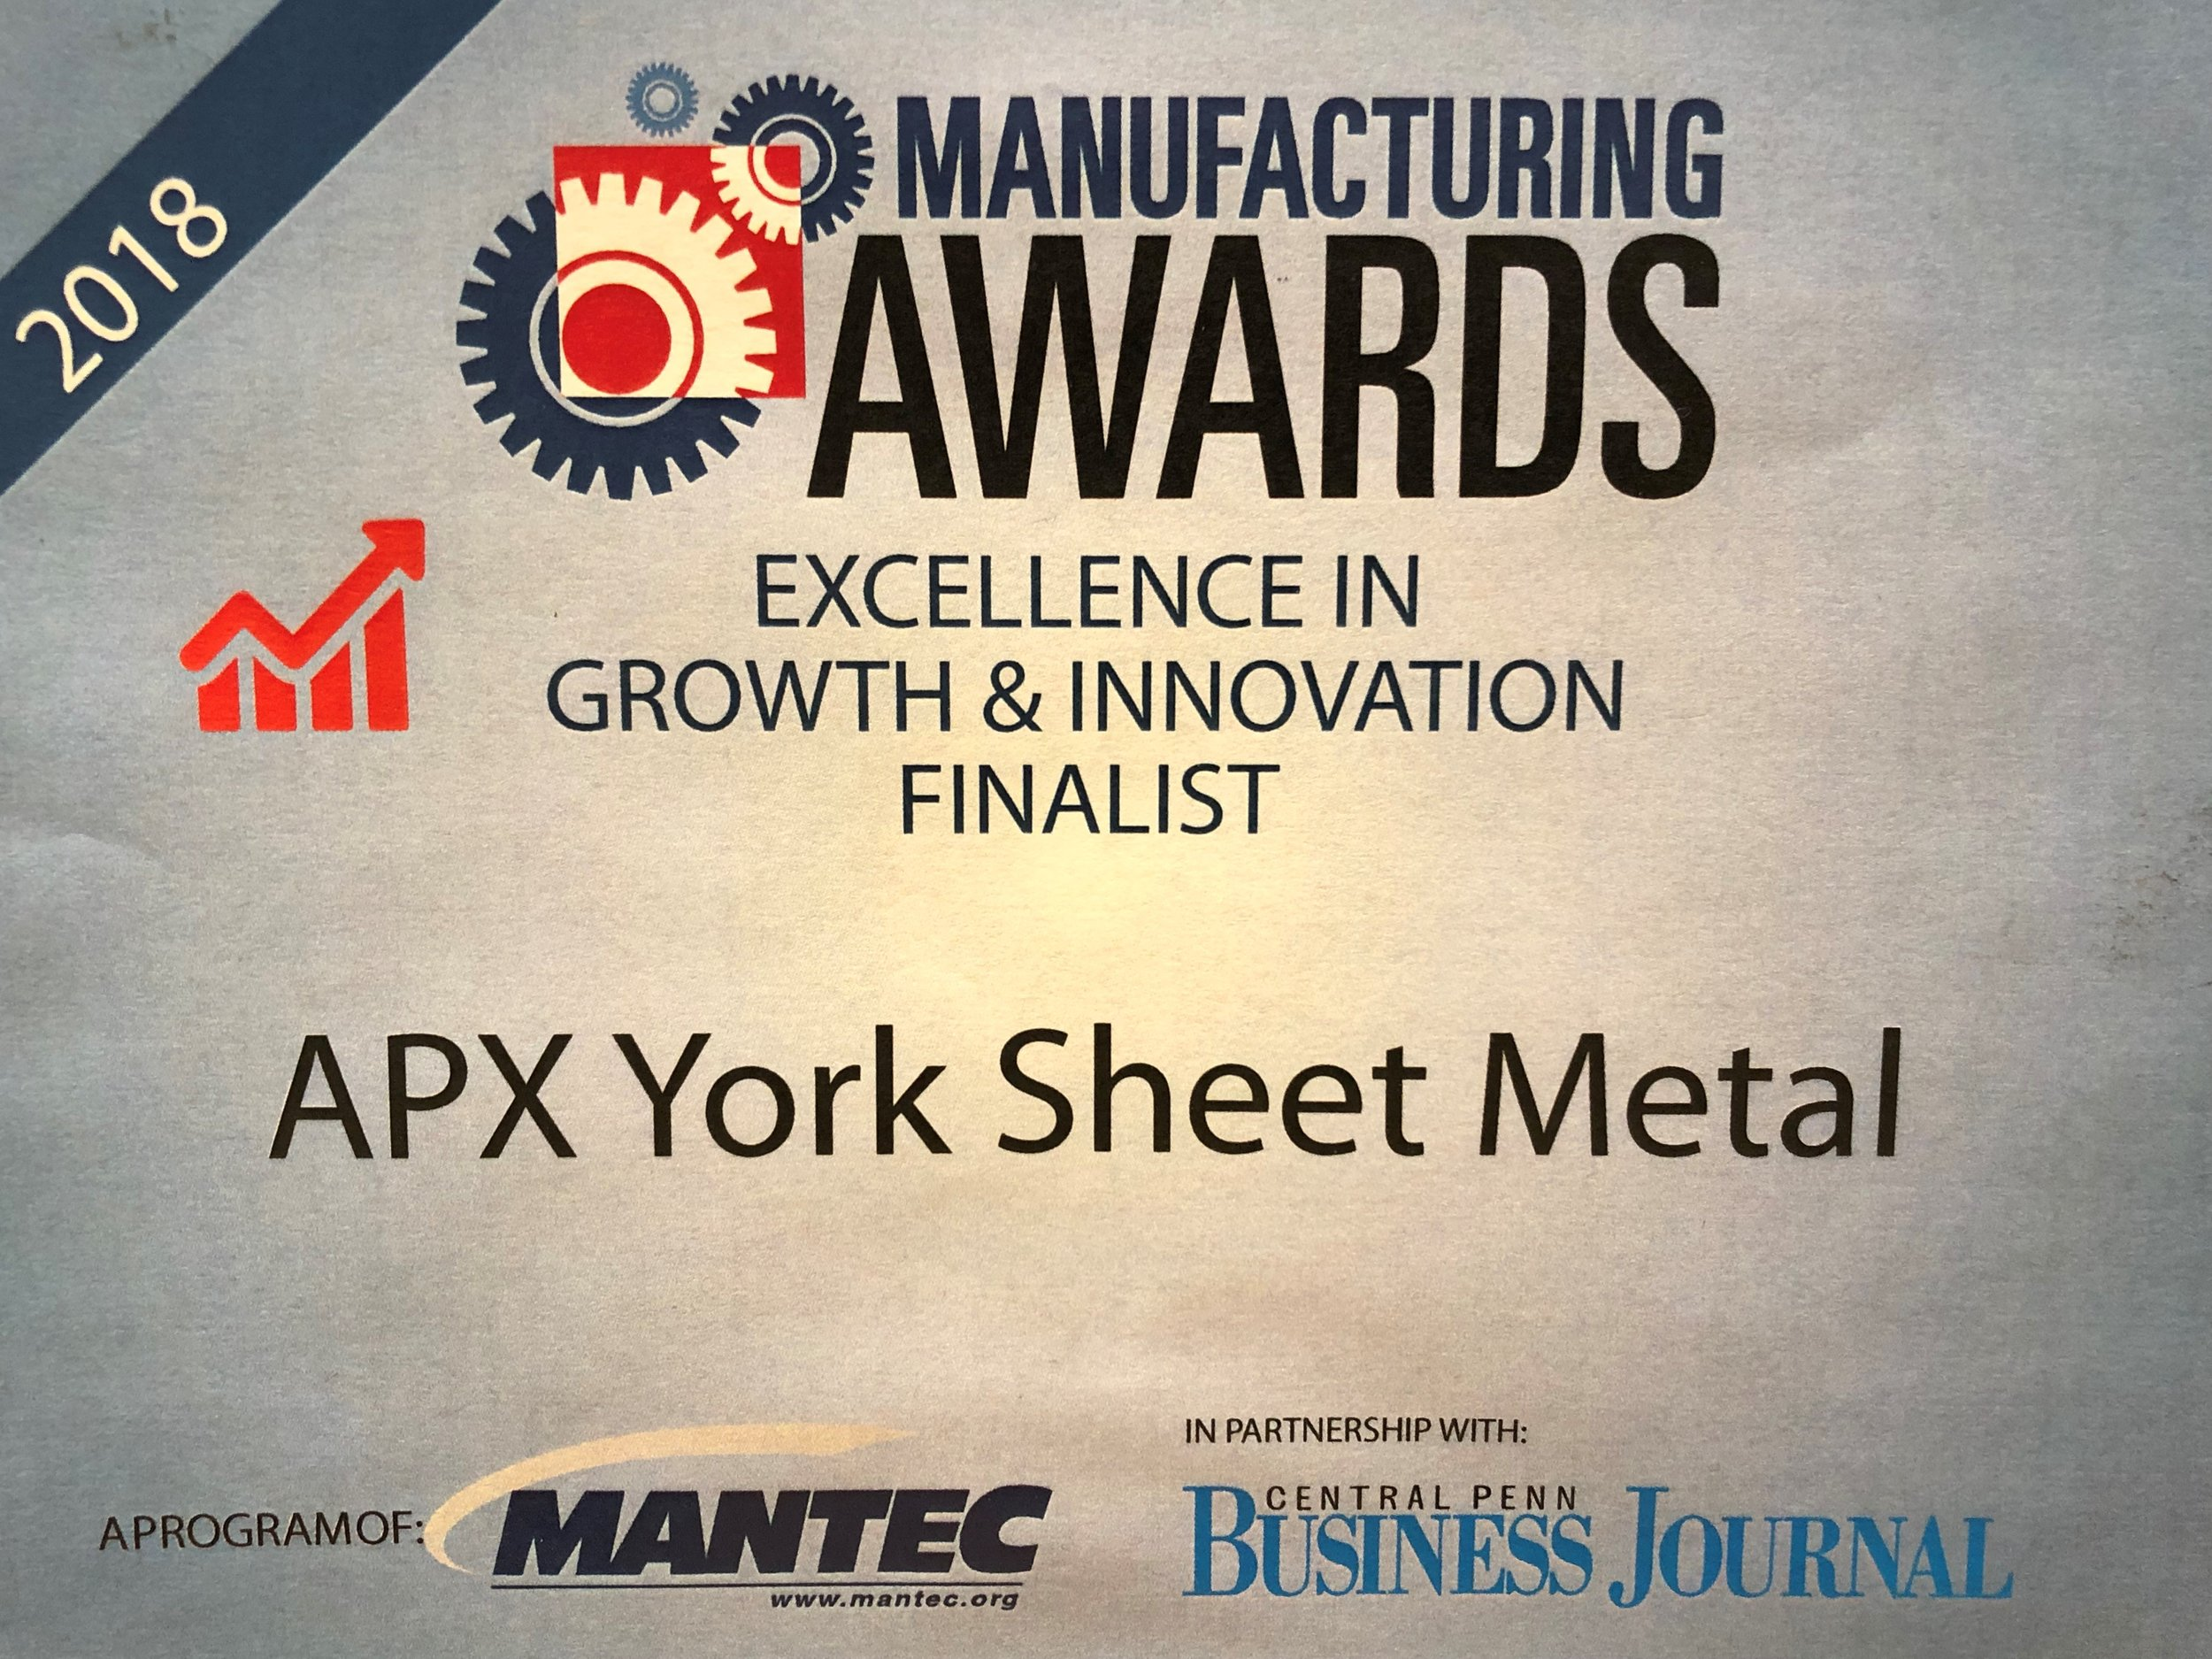 Mantec Manufacturing Awards Finalist.jpg